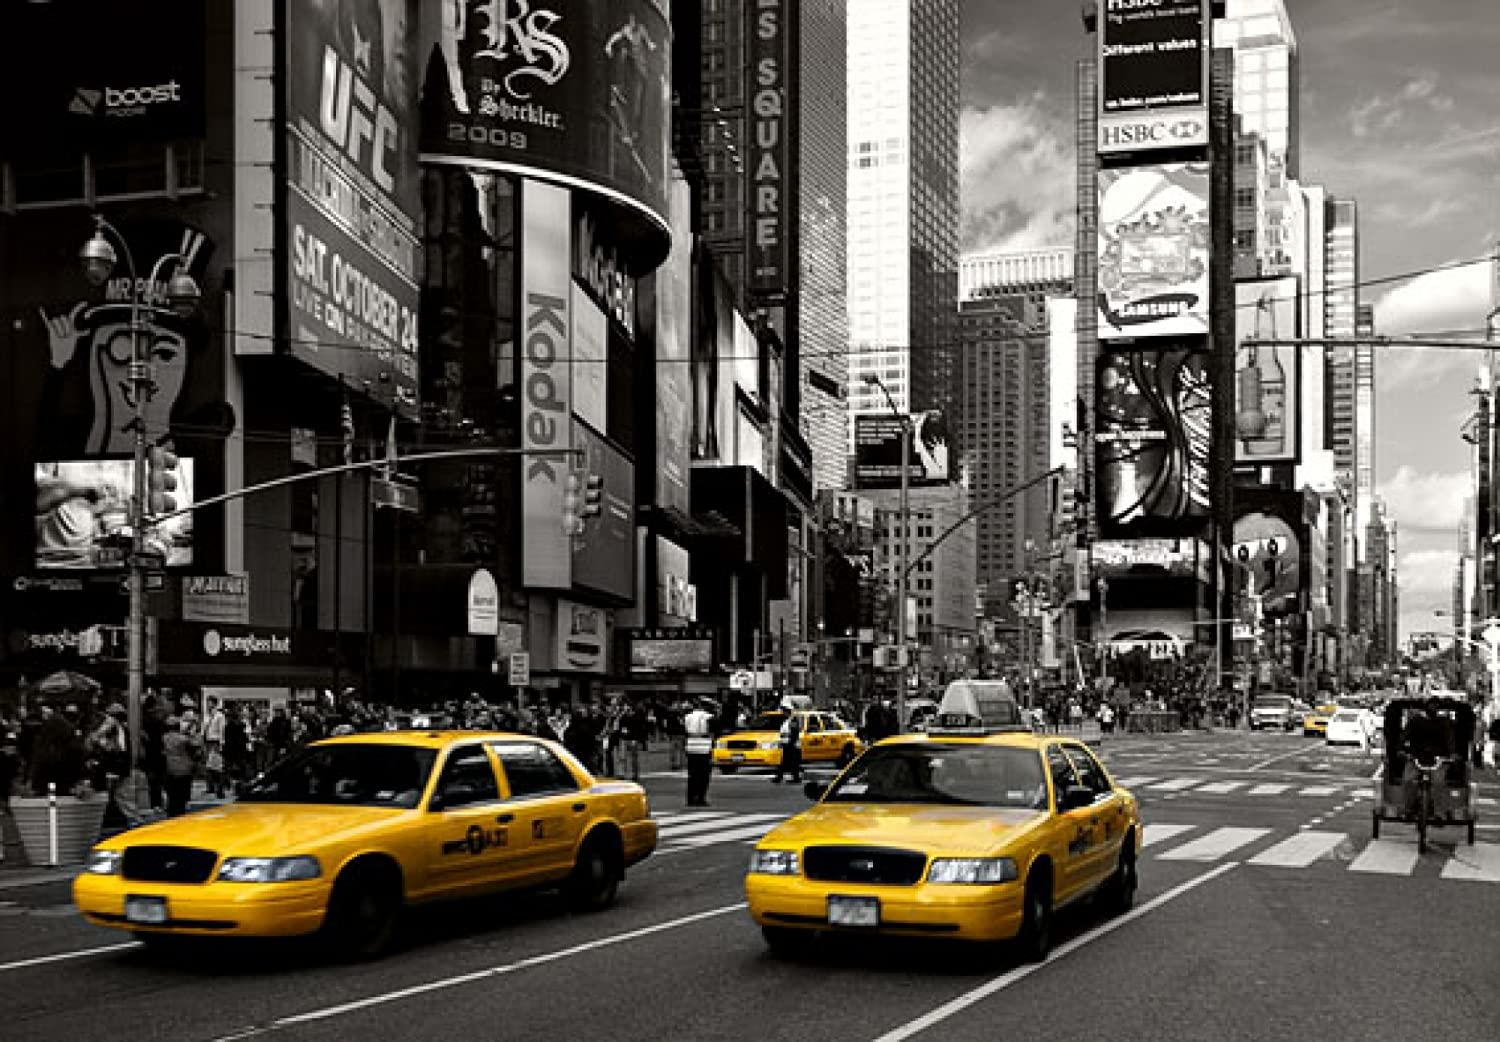 Yellow Cabs at Times Square Photo Wallpaper 368cm x 254cm